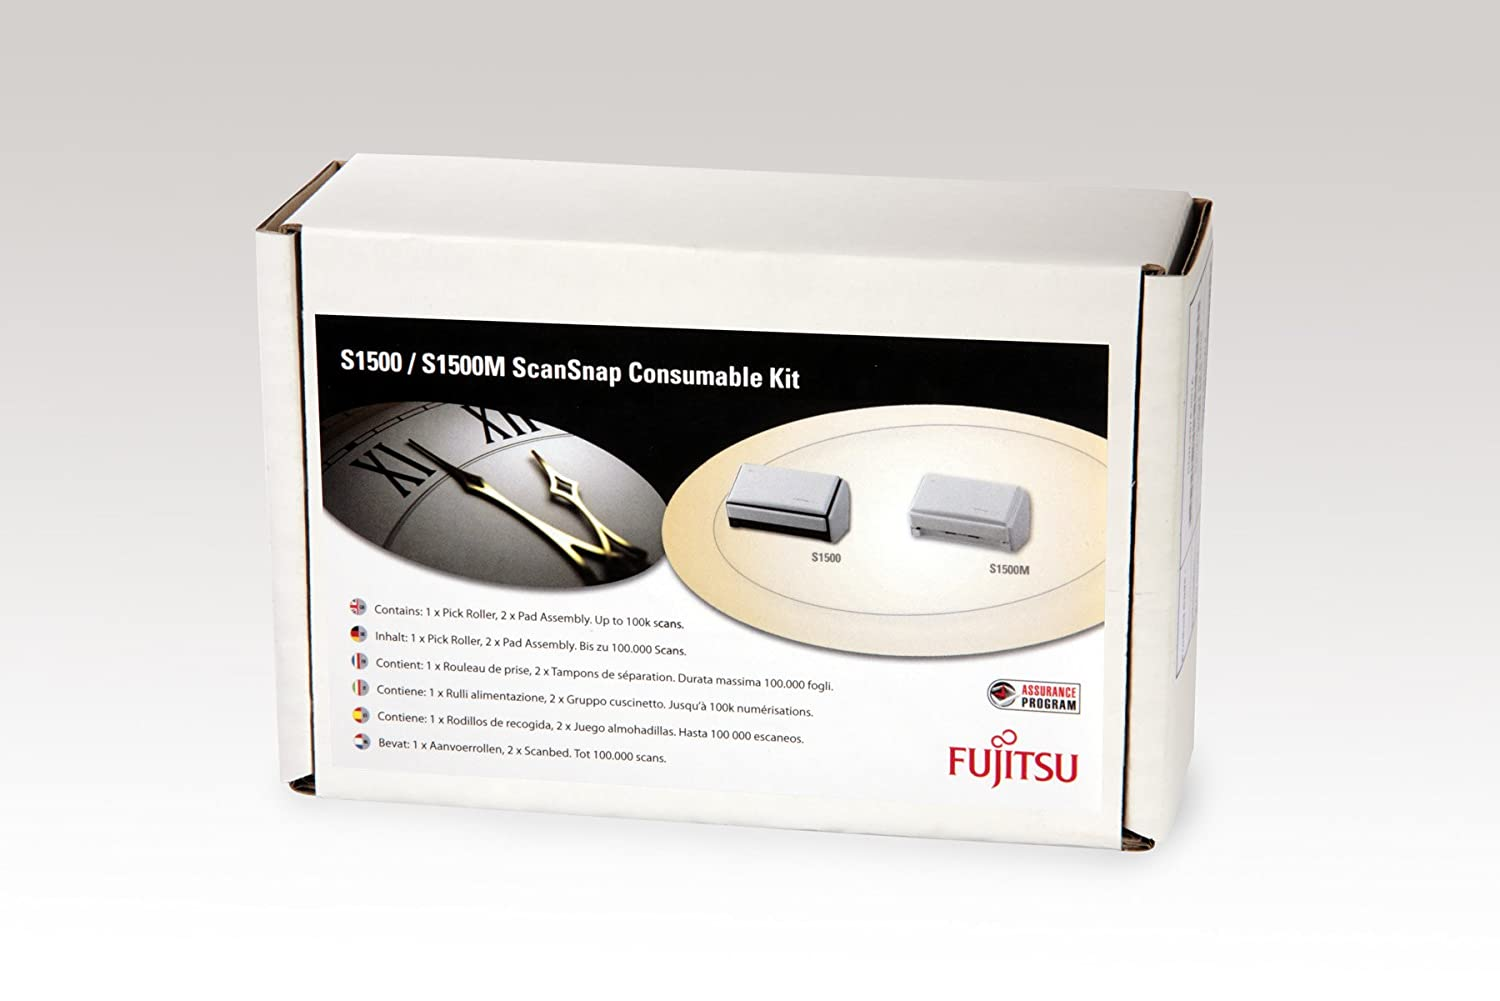 Fujitsu Consumable kit for ScanSnap fi-5110EOX, fi-5110EOX2 fi-5110EOXM, S500, S500M S510, S510M CON-3360-001A